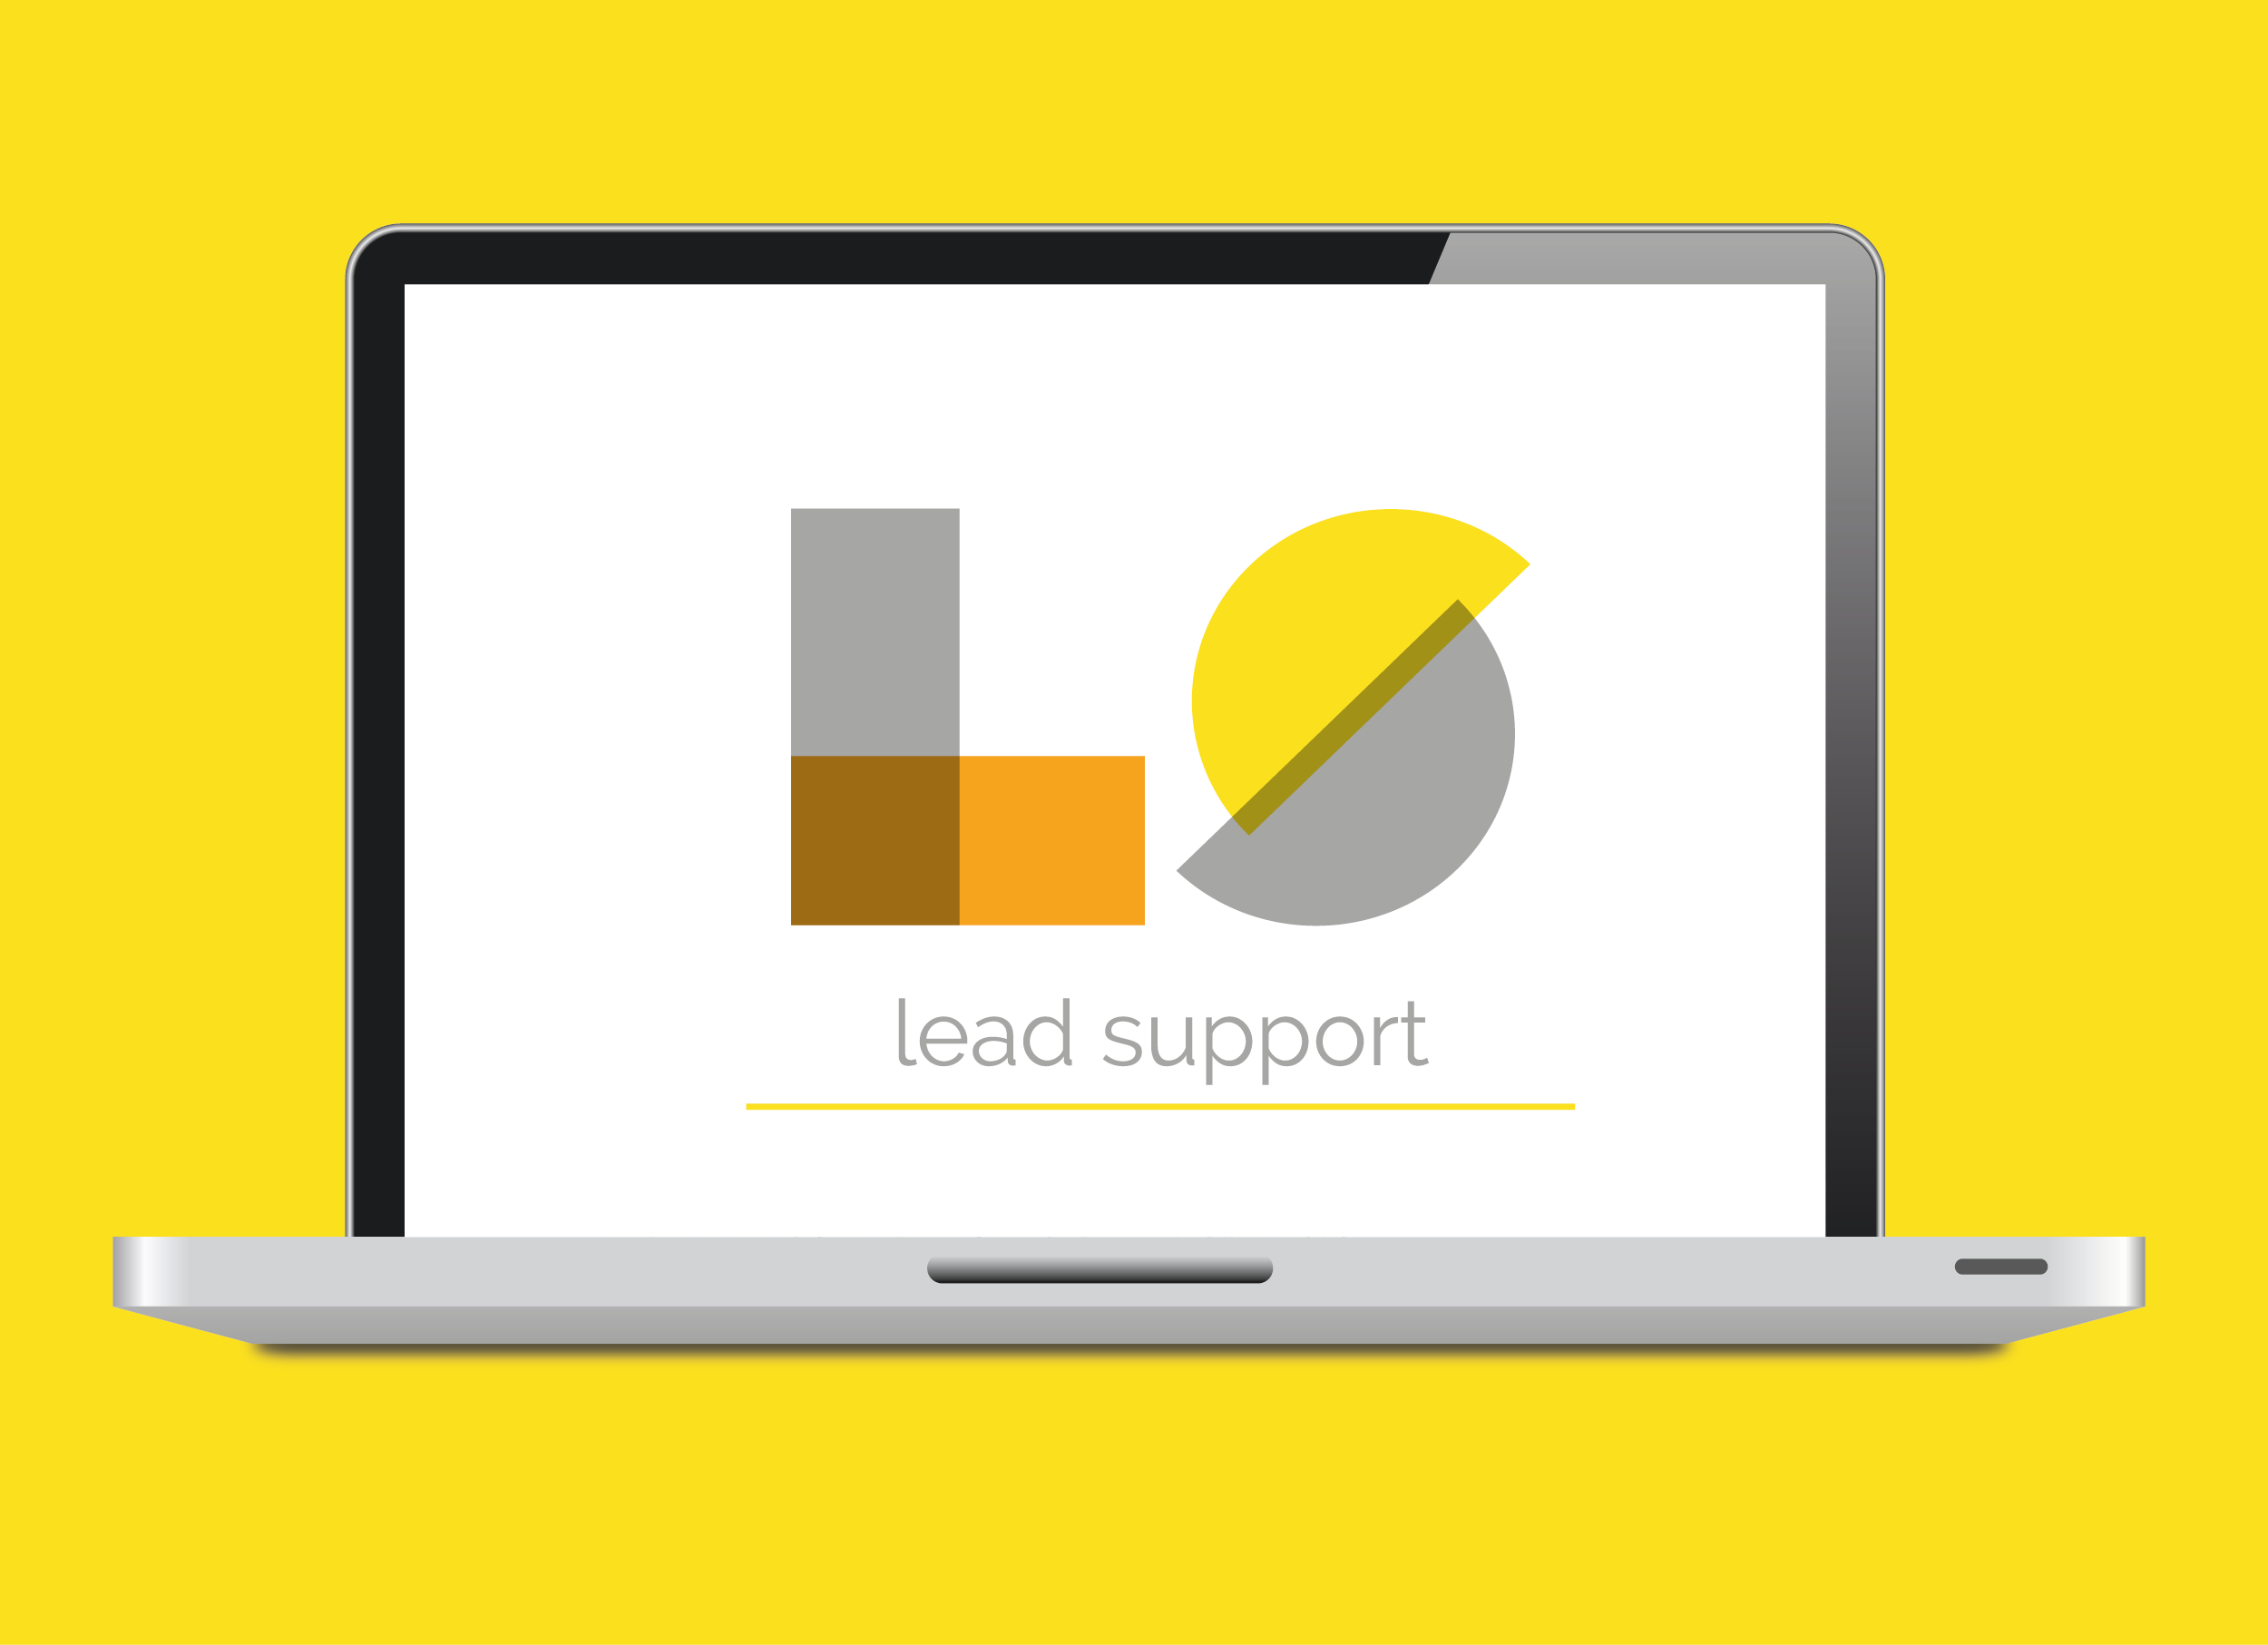 leadsupport-01